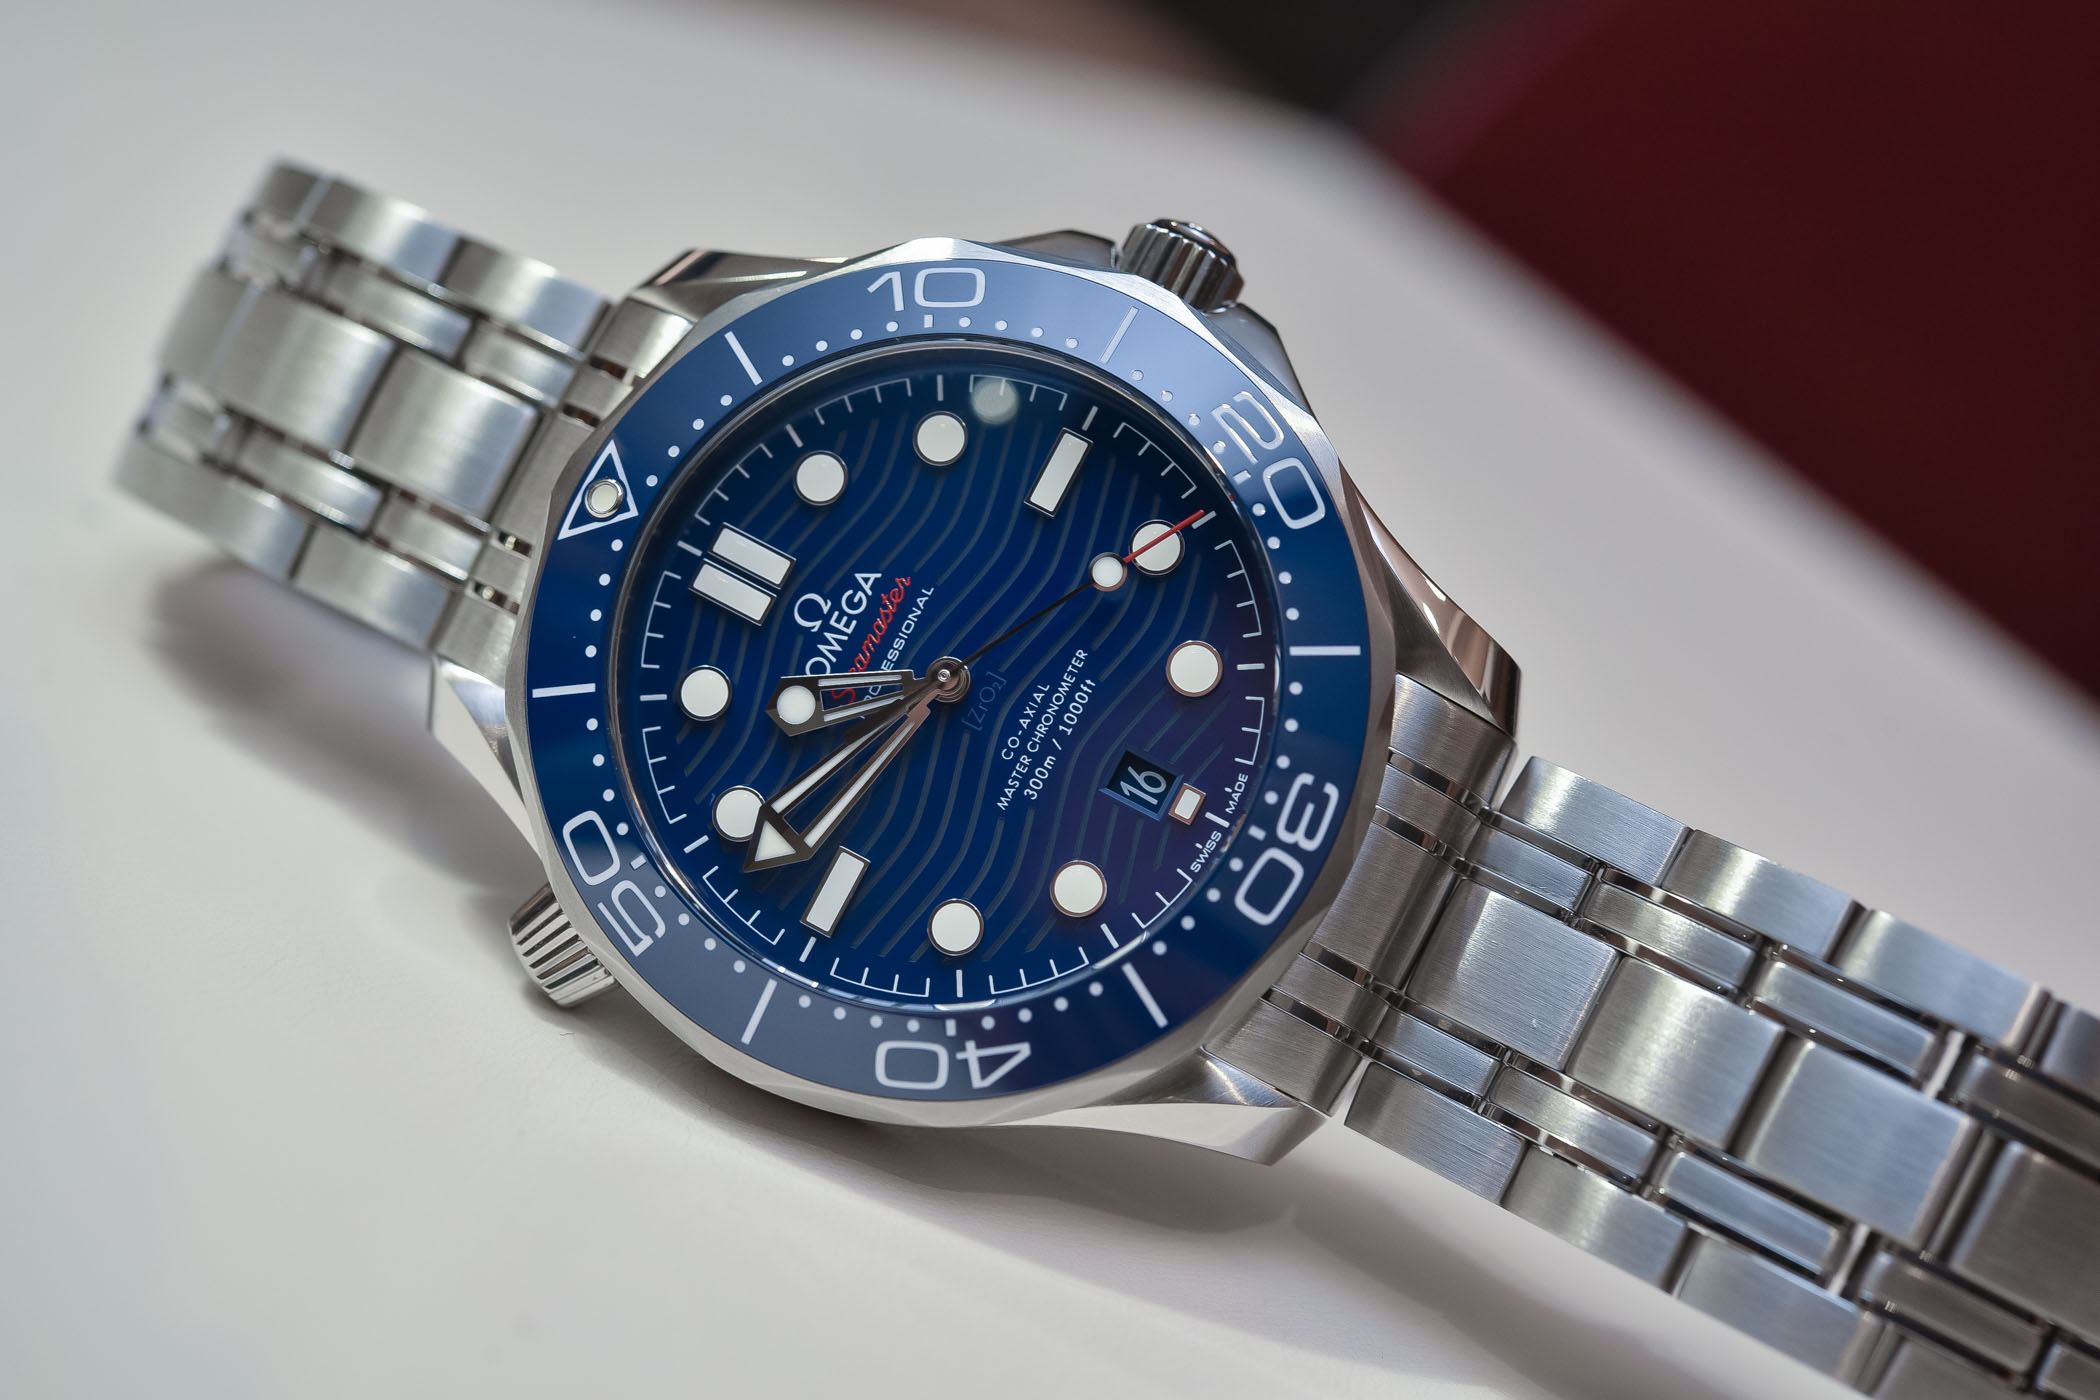 Best Dive Watches Baselworld 2018 - OMEGA SEAMASTER DIVER 300M